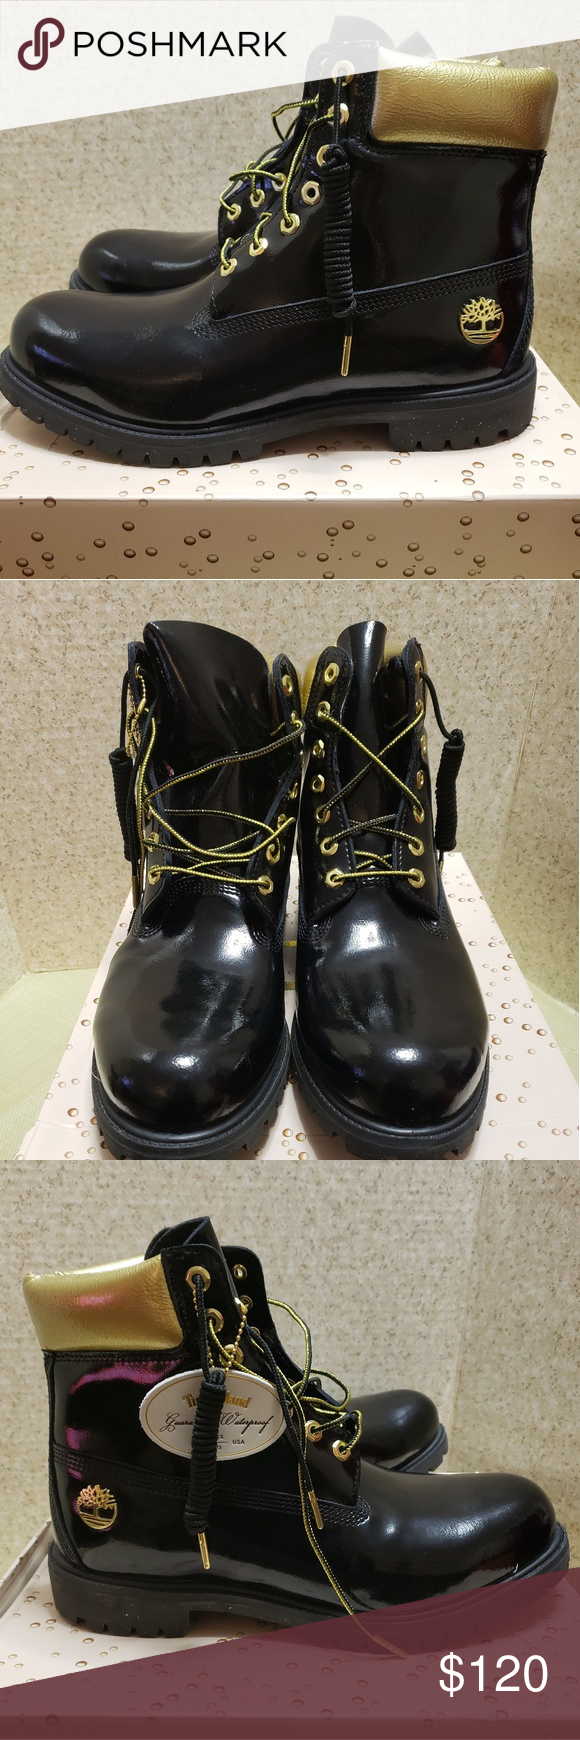 Shoes boots timberland, Timberland boots